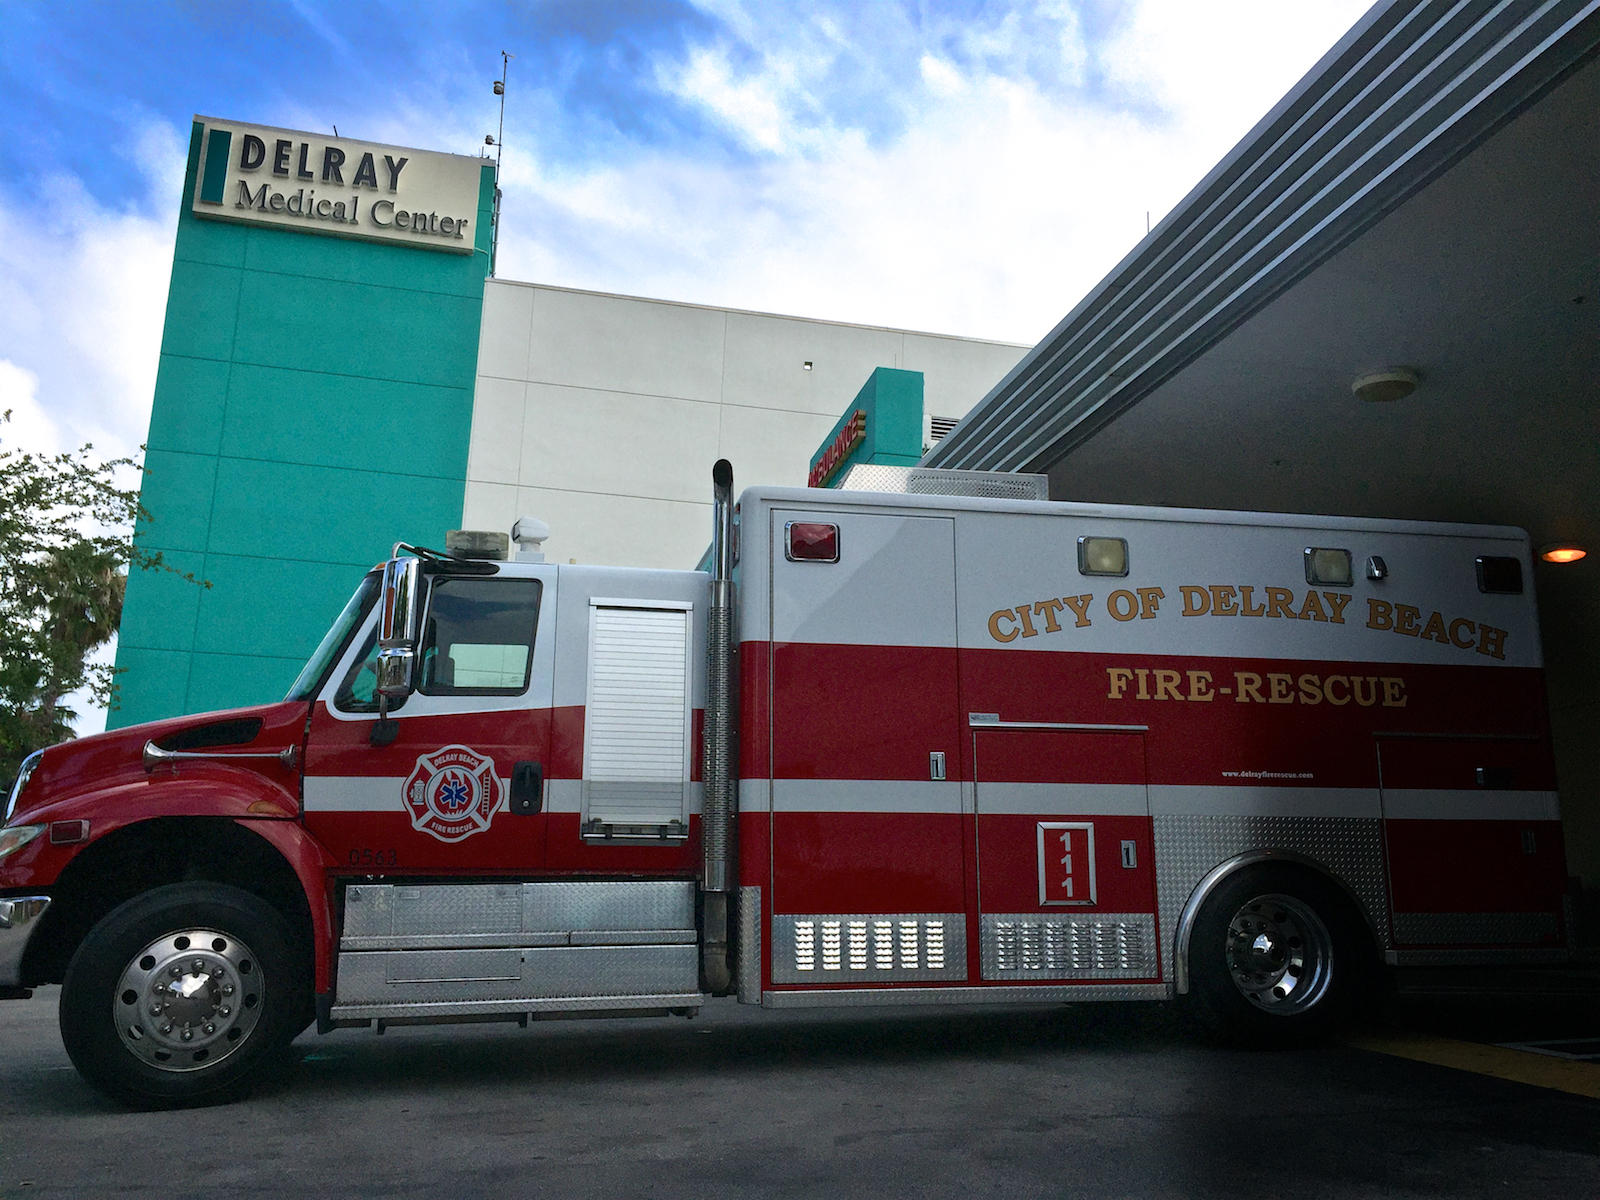 A Delray Beach Fire Rescue Team Delivers Patient To Medical Center On May 19 2017 Truck Is Comparable An Ambulance In Form And